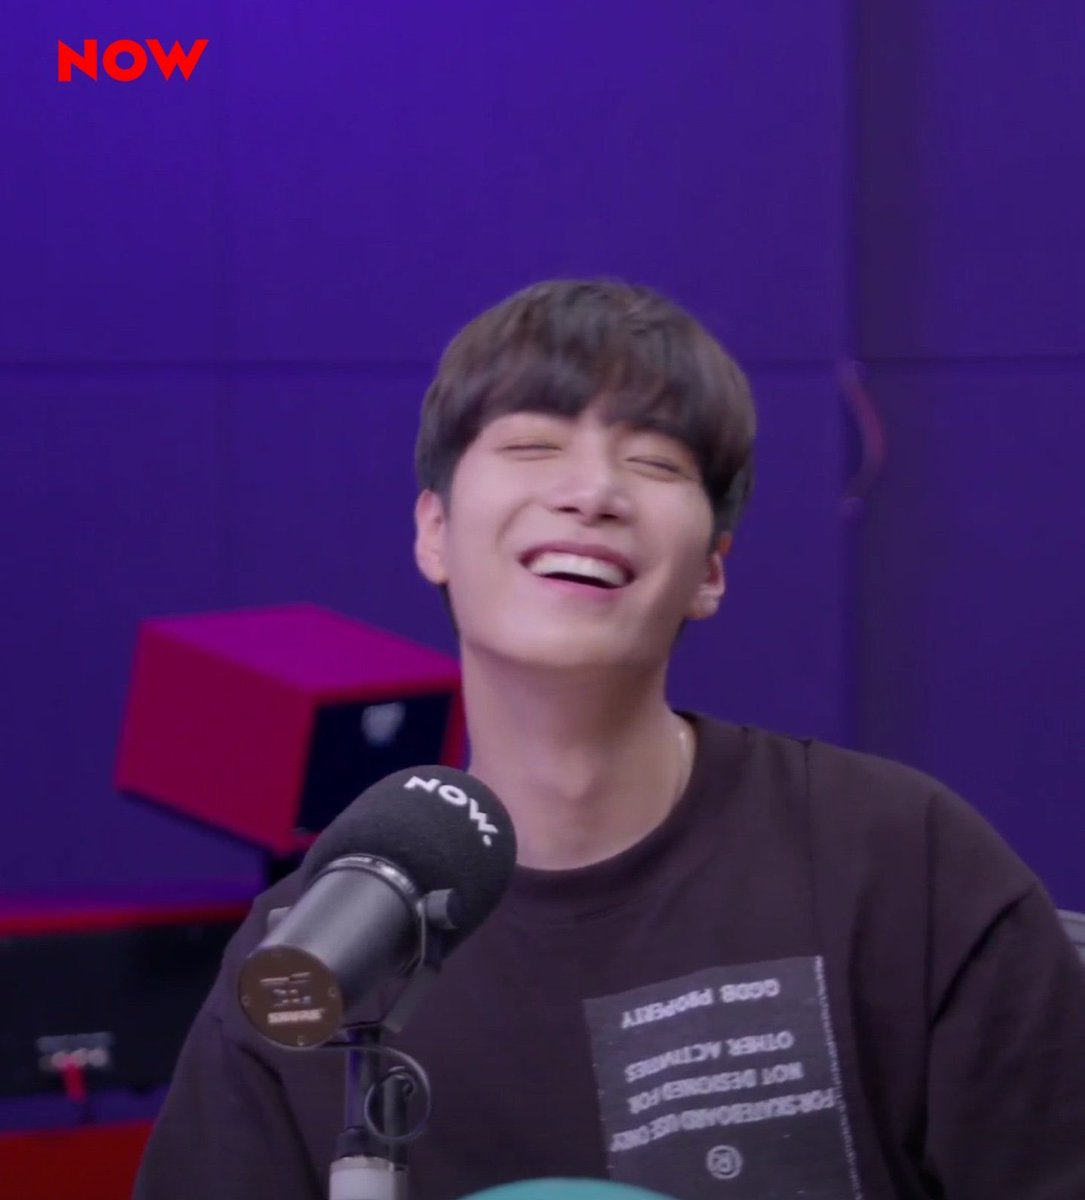 His eyes, and the way he smiles, I get butterflies 🦋💕  @NUESTNEWS  #NUEST #뉴이스트 #JR https://t.co/vrC5ohniU9